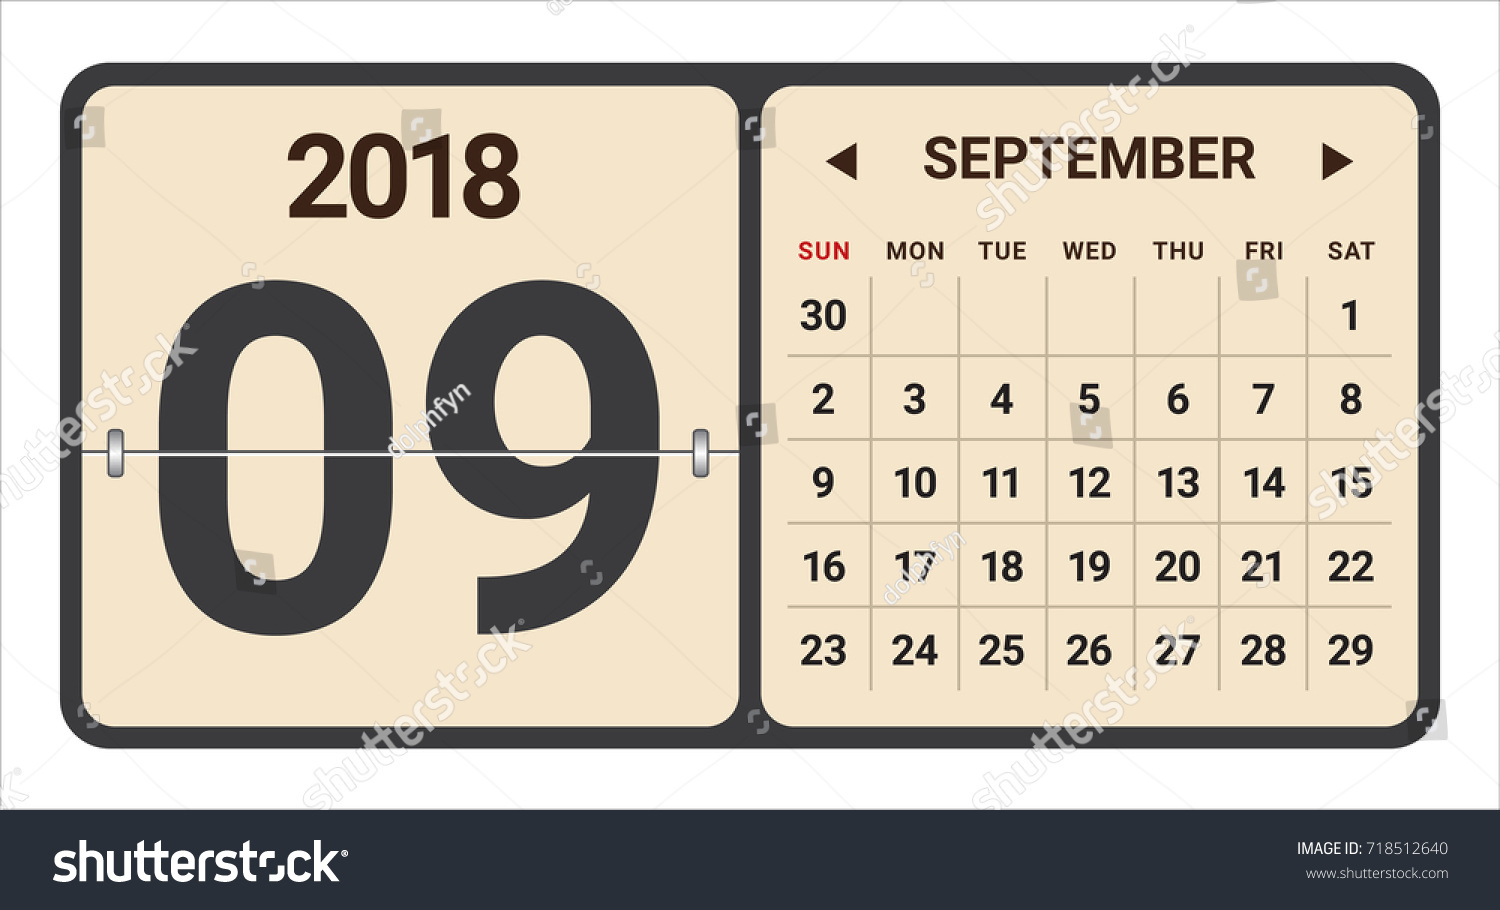 september 2018 calendar vector illustration simple and clean design